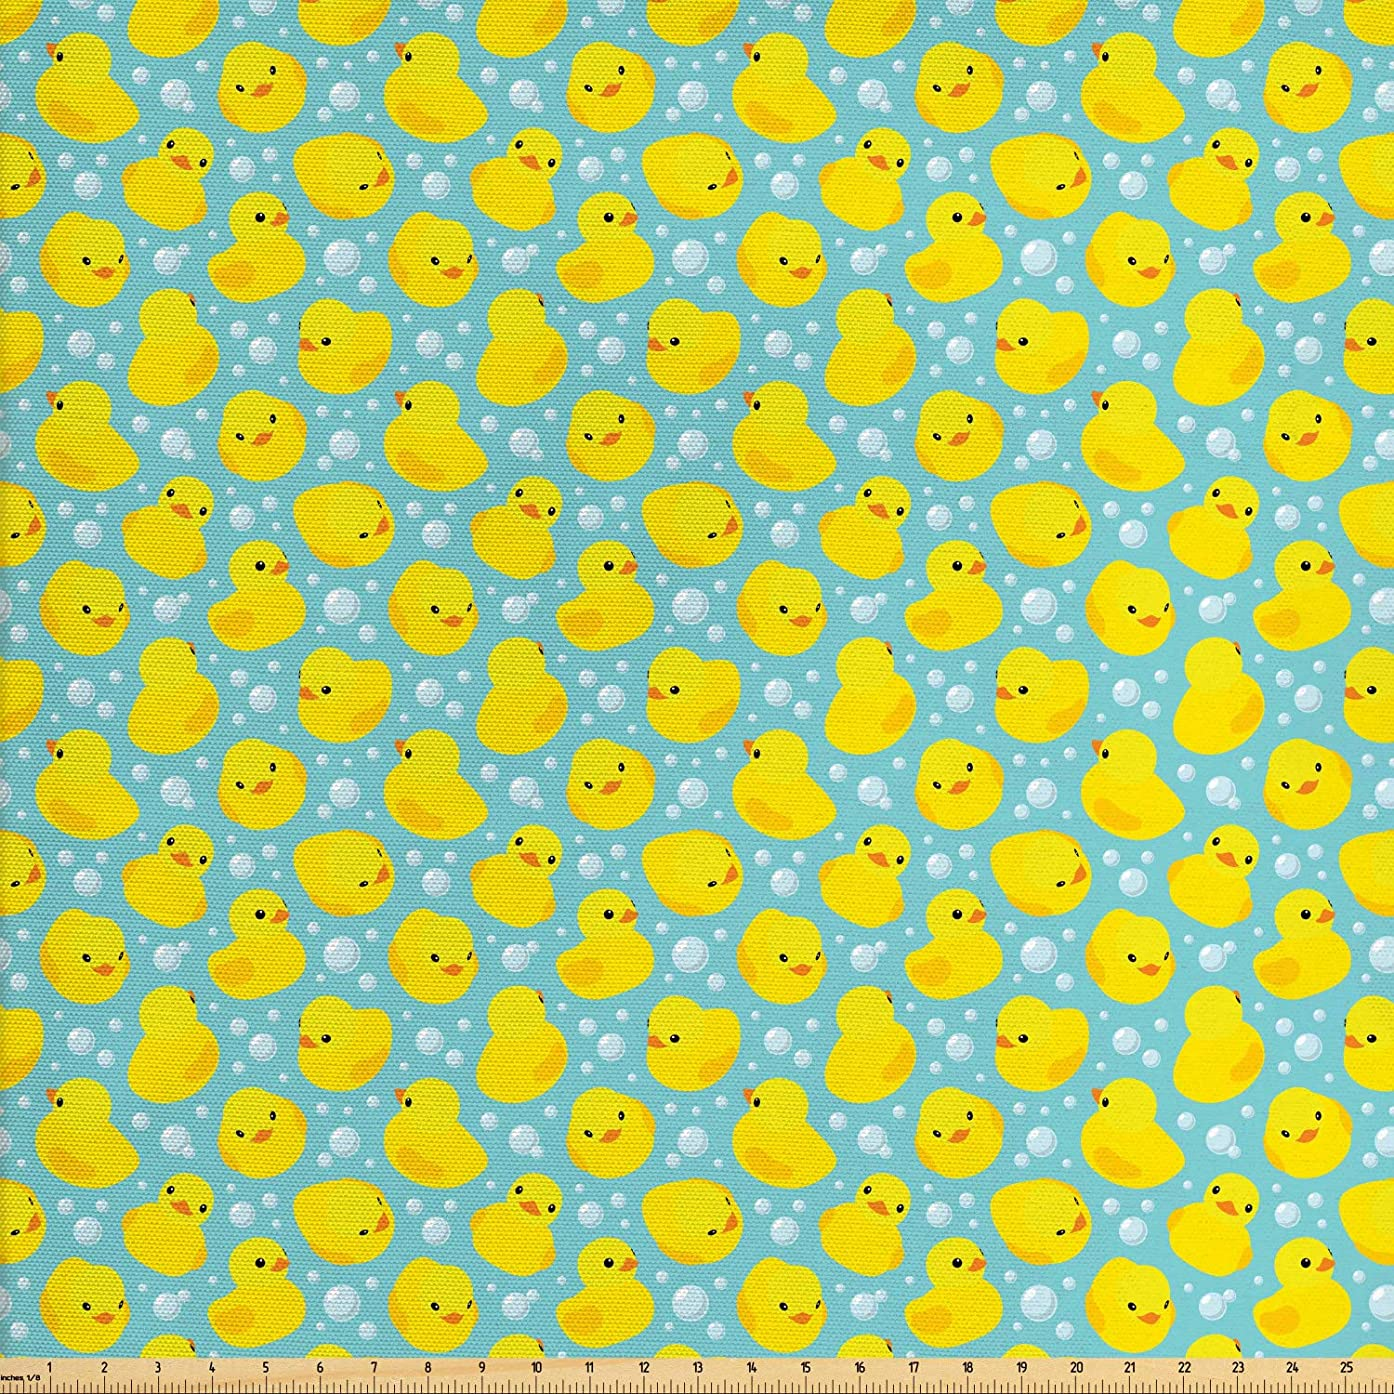 Lunarable Nursery Fabric by The Yard, Cute Happy Rubber Duck and Bubbles Cartoon Pattern Childhood Kids Theme Art, Decorative Fabric for Upholstery and Home Accents, 1 Yard, Aqua and Yellow